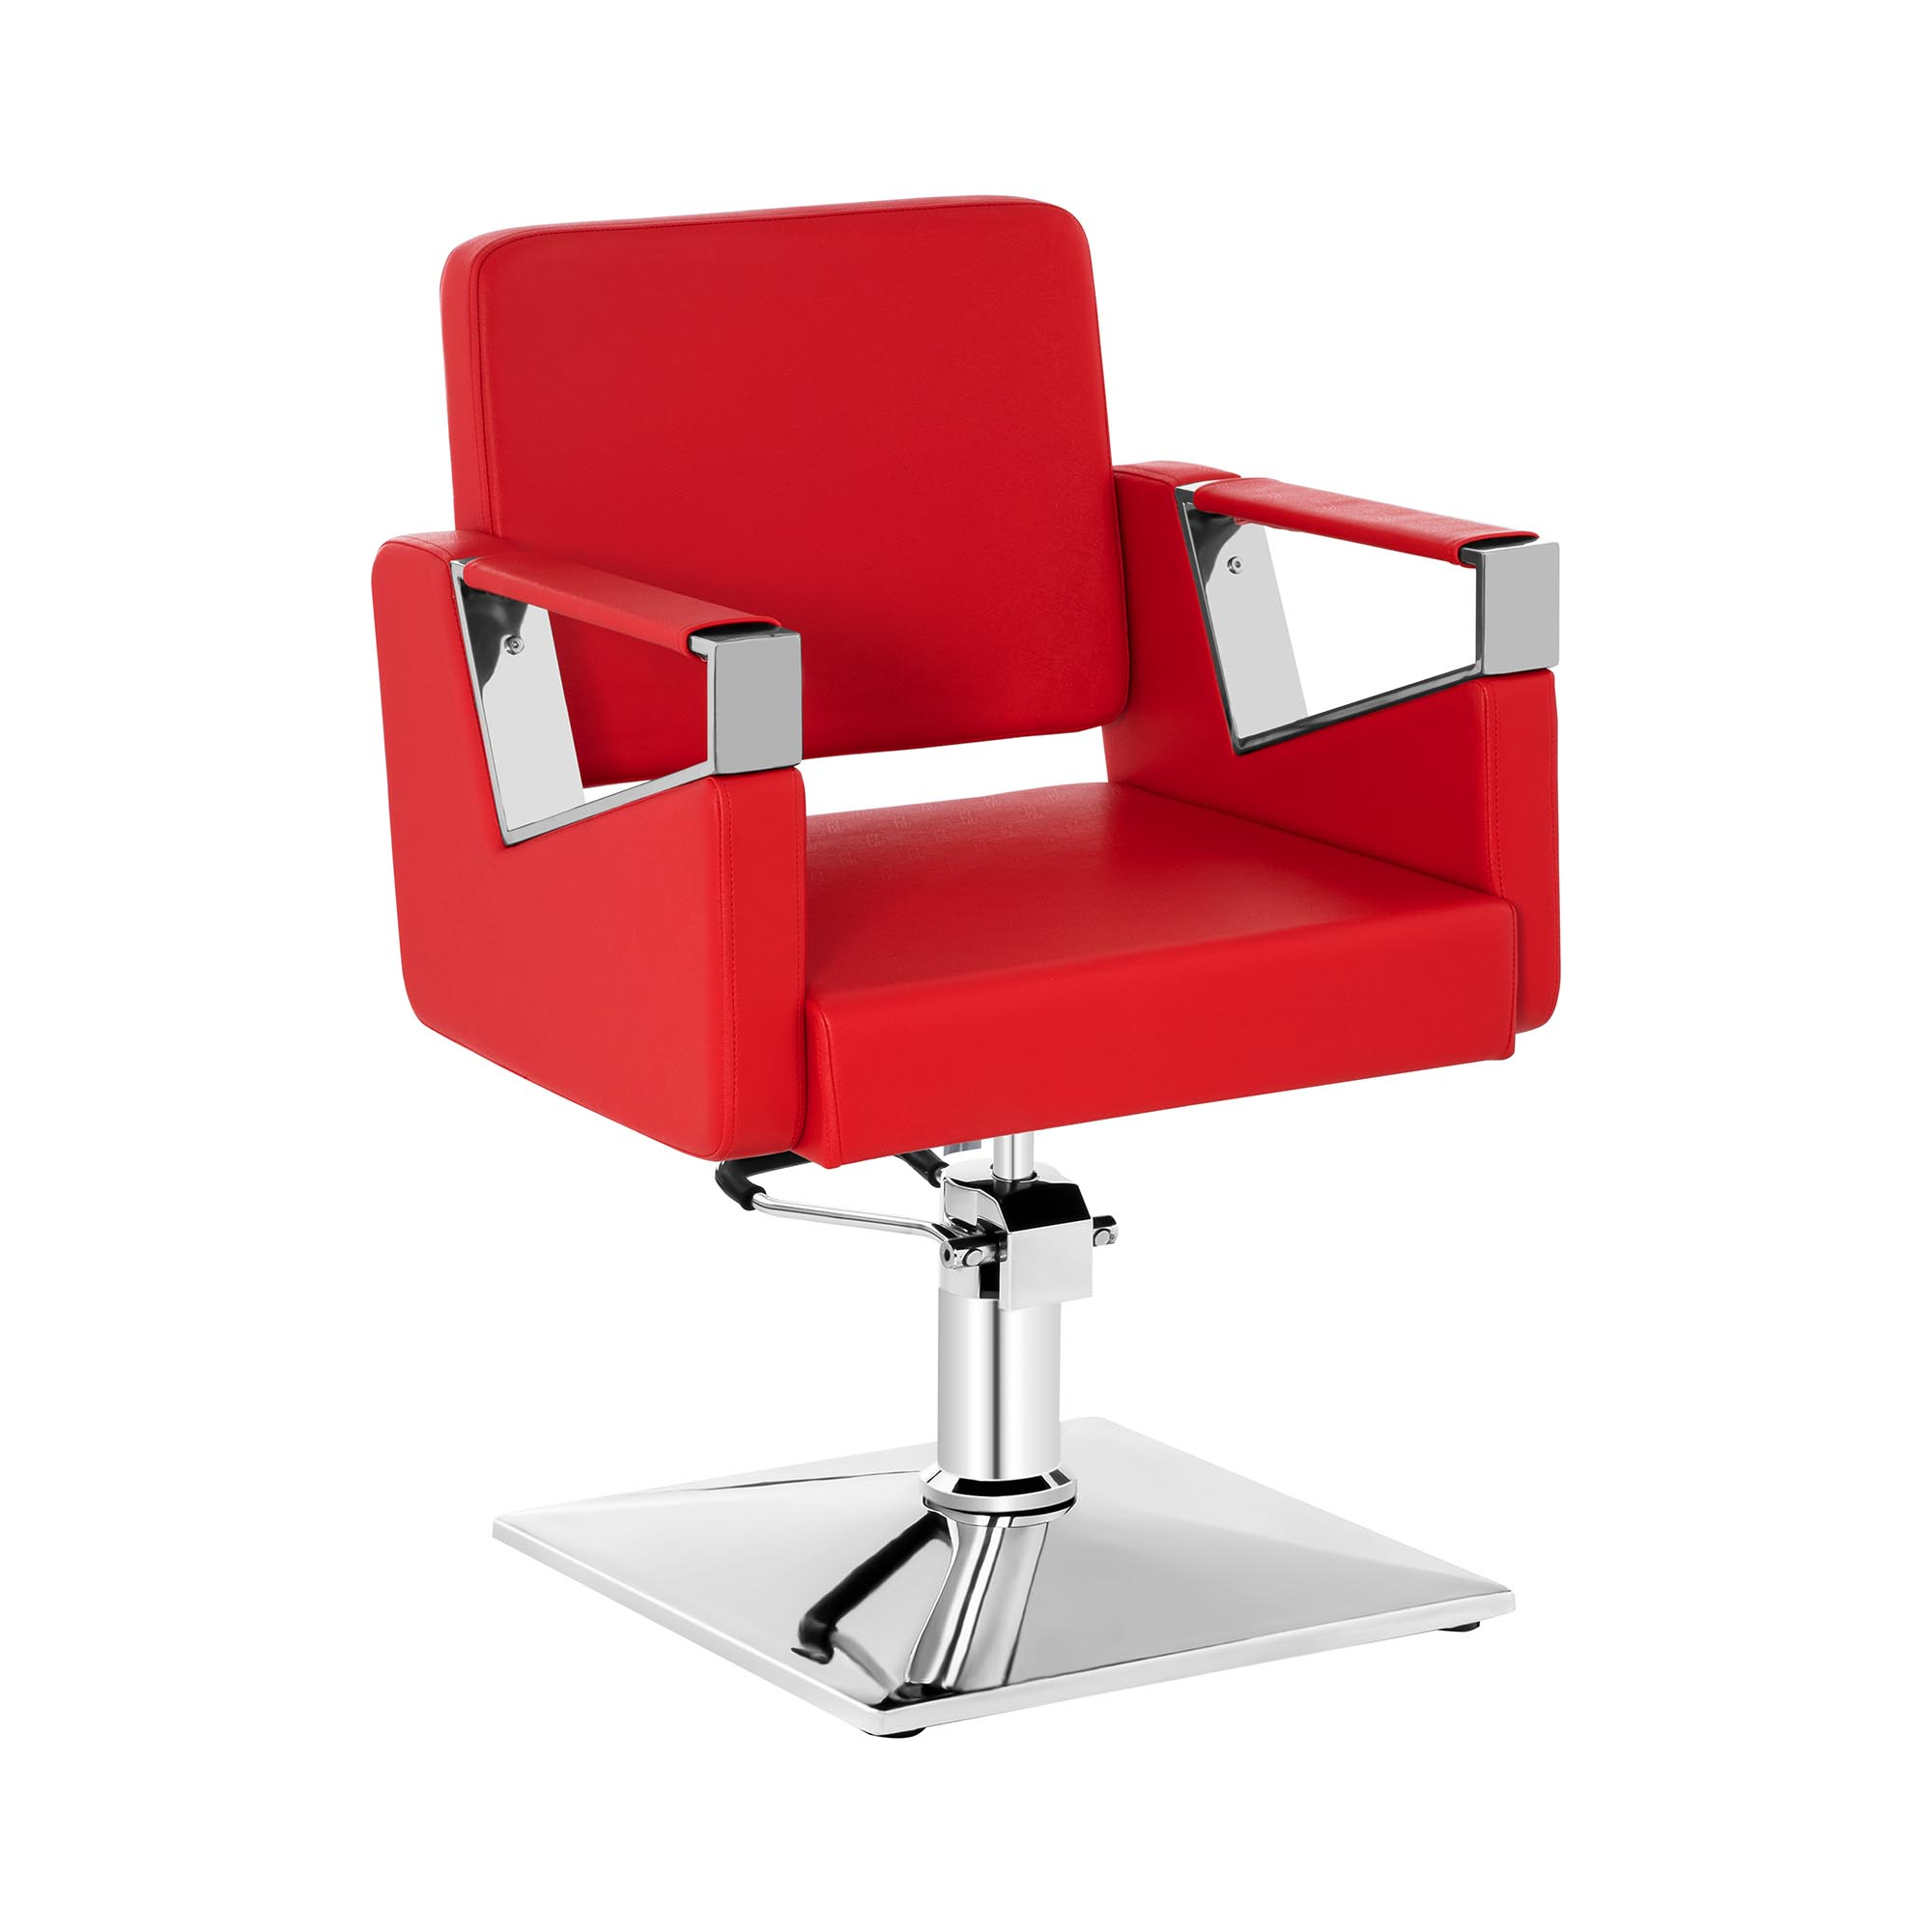 physa Friseurstuhl BRISTOL RED 10040272